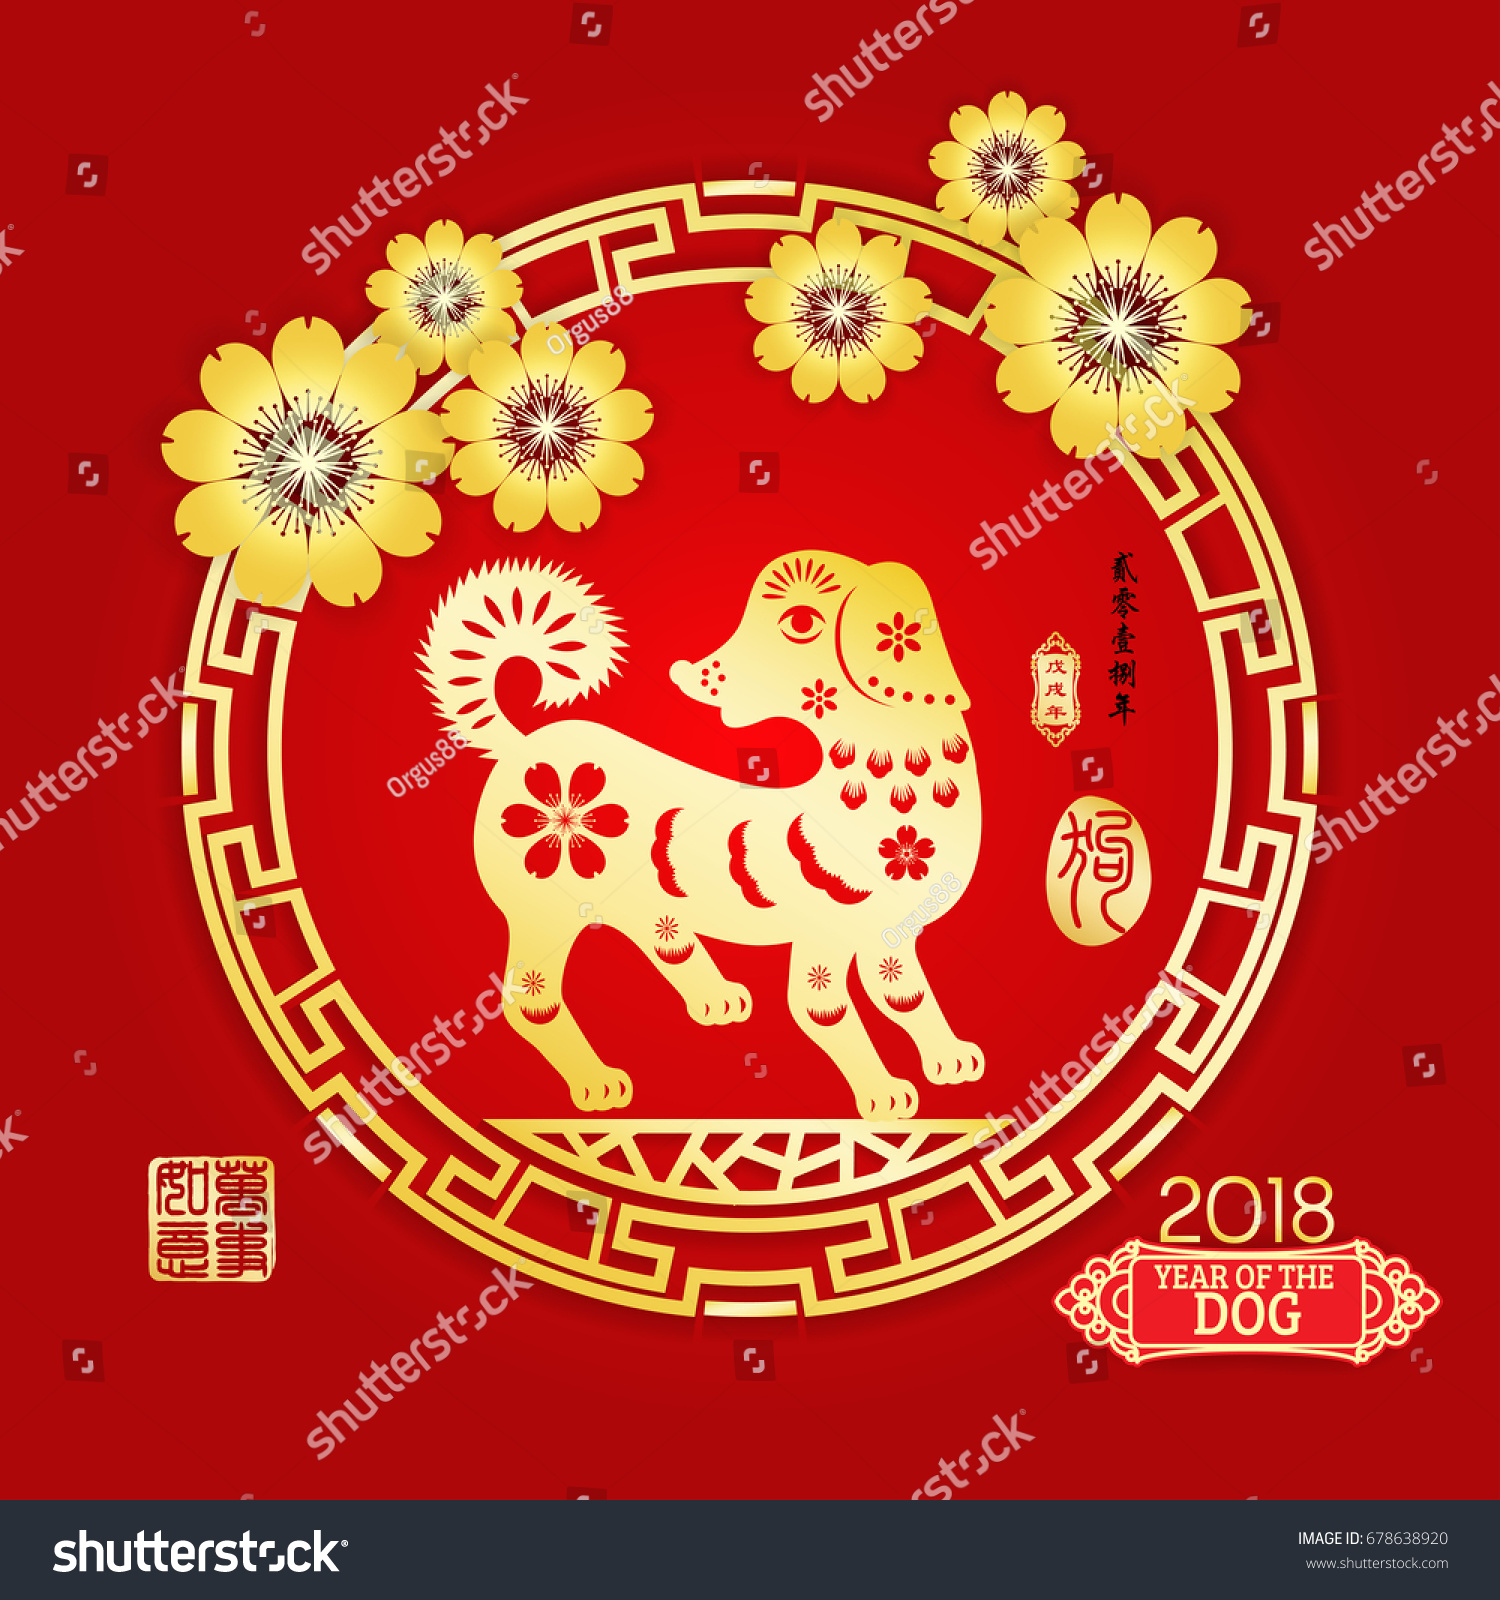 Japanese New Year Calendar : Chinese new year dog stock vector